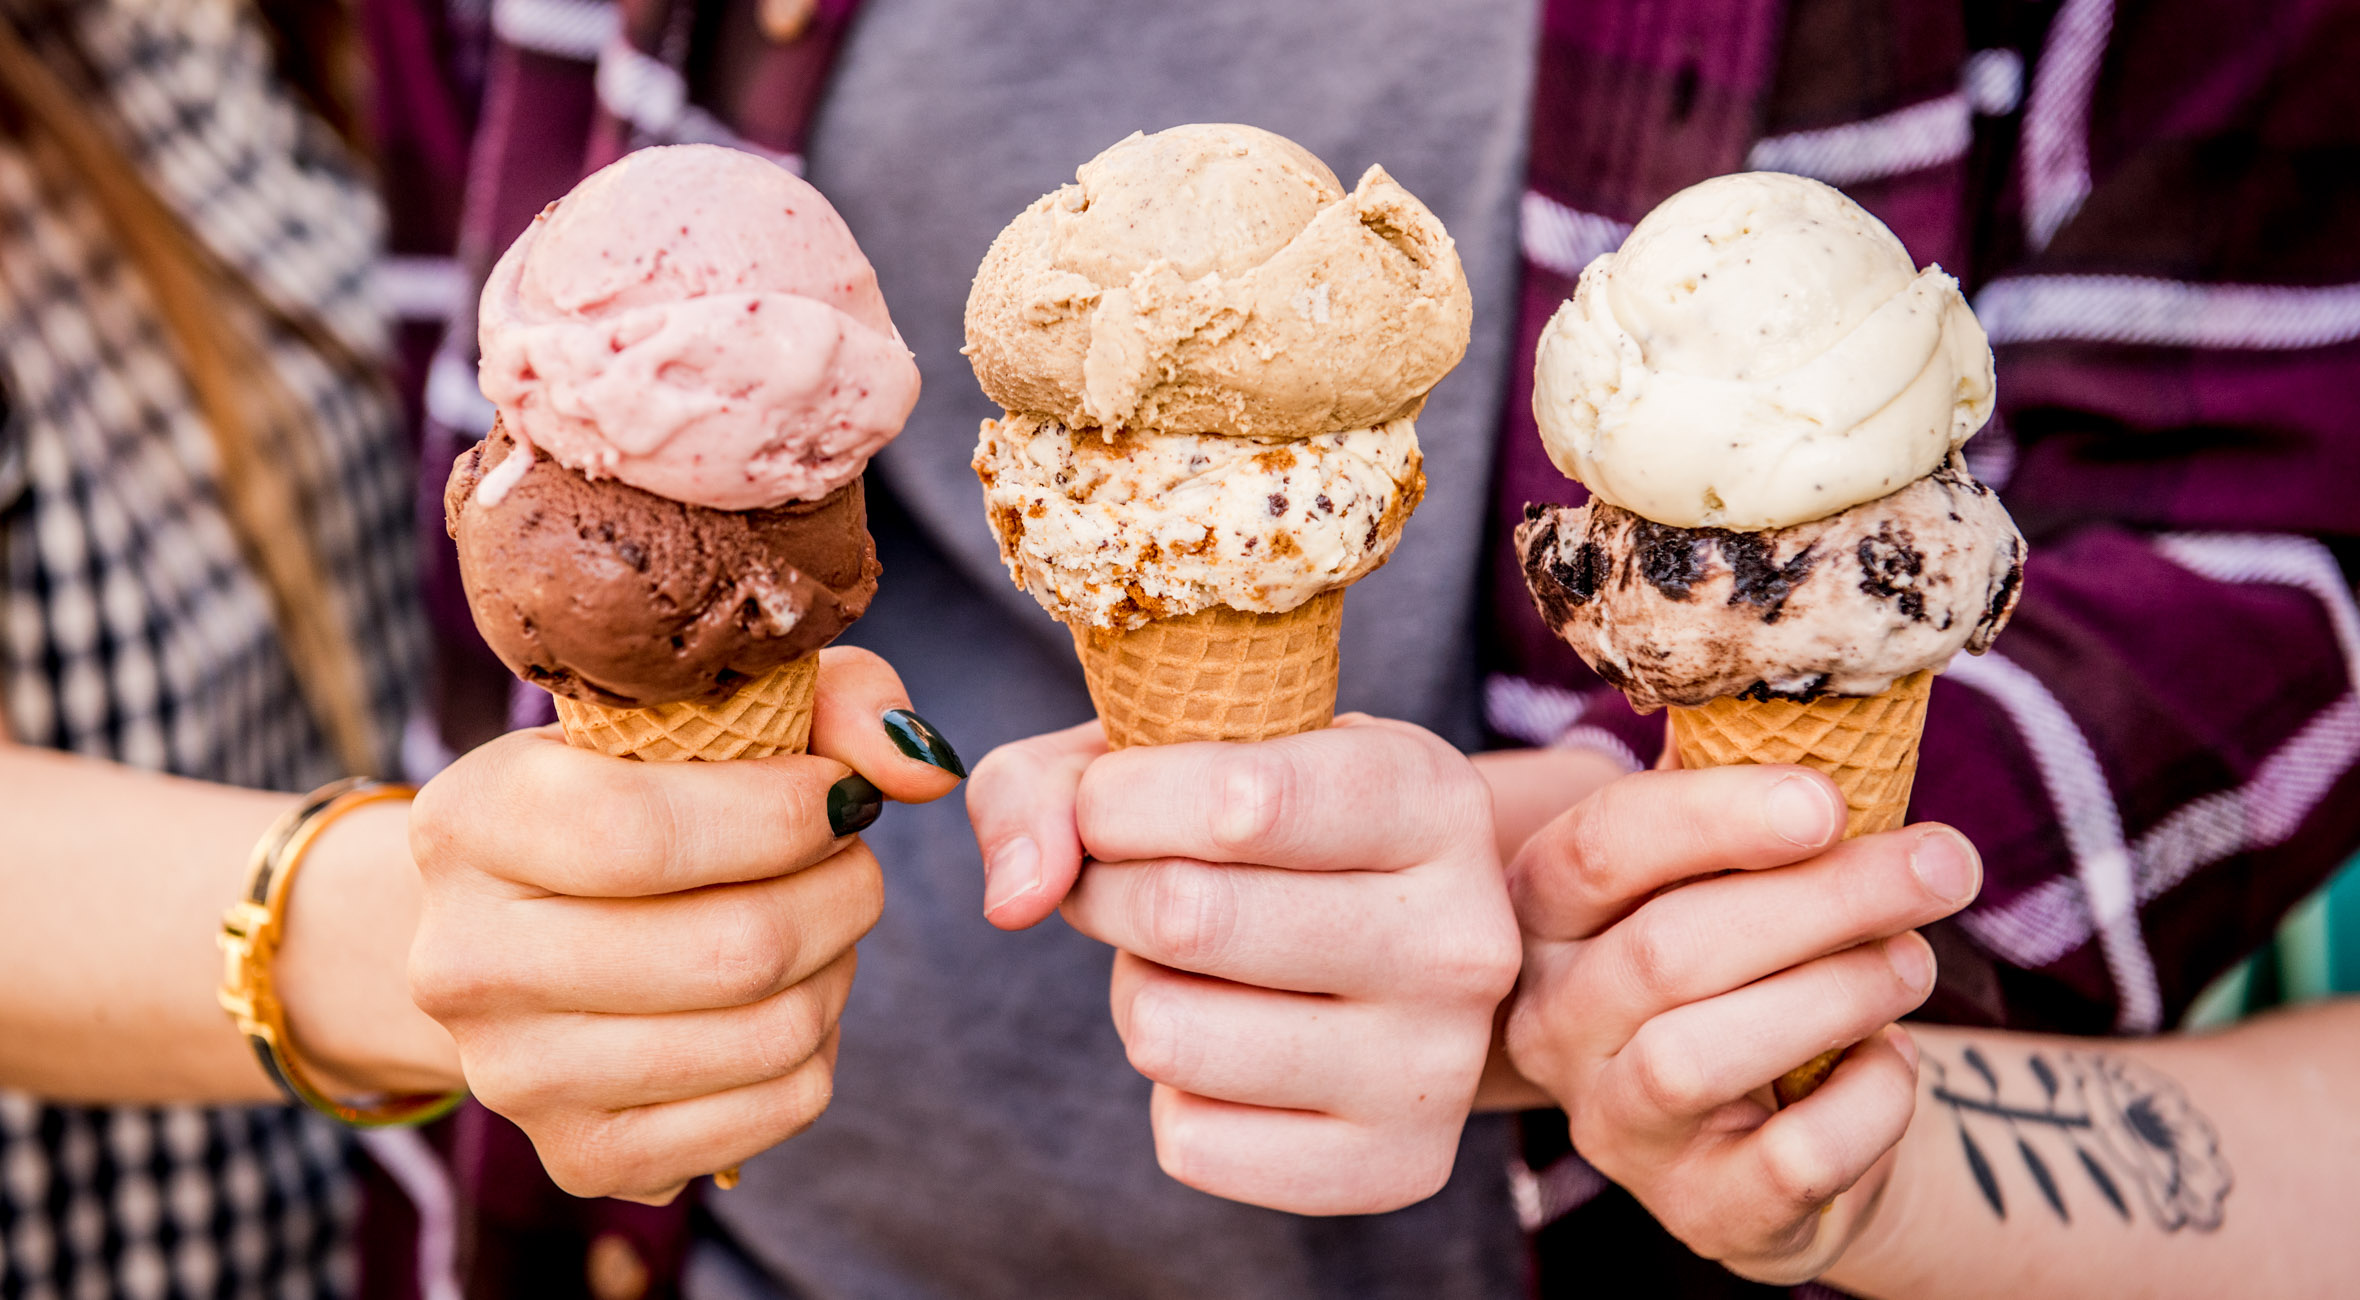 Two Ice Creams with Double Scoops at Davey's Ice Cream – Voted one of the Best Ice Cream Shops in NYC by Zagat